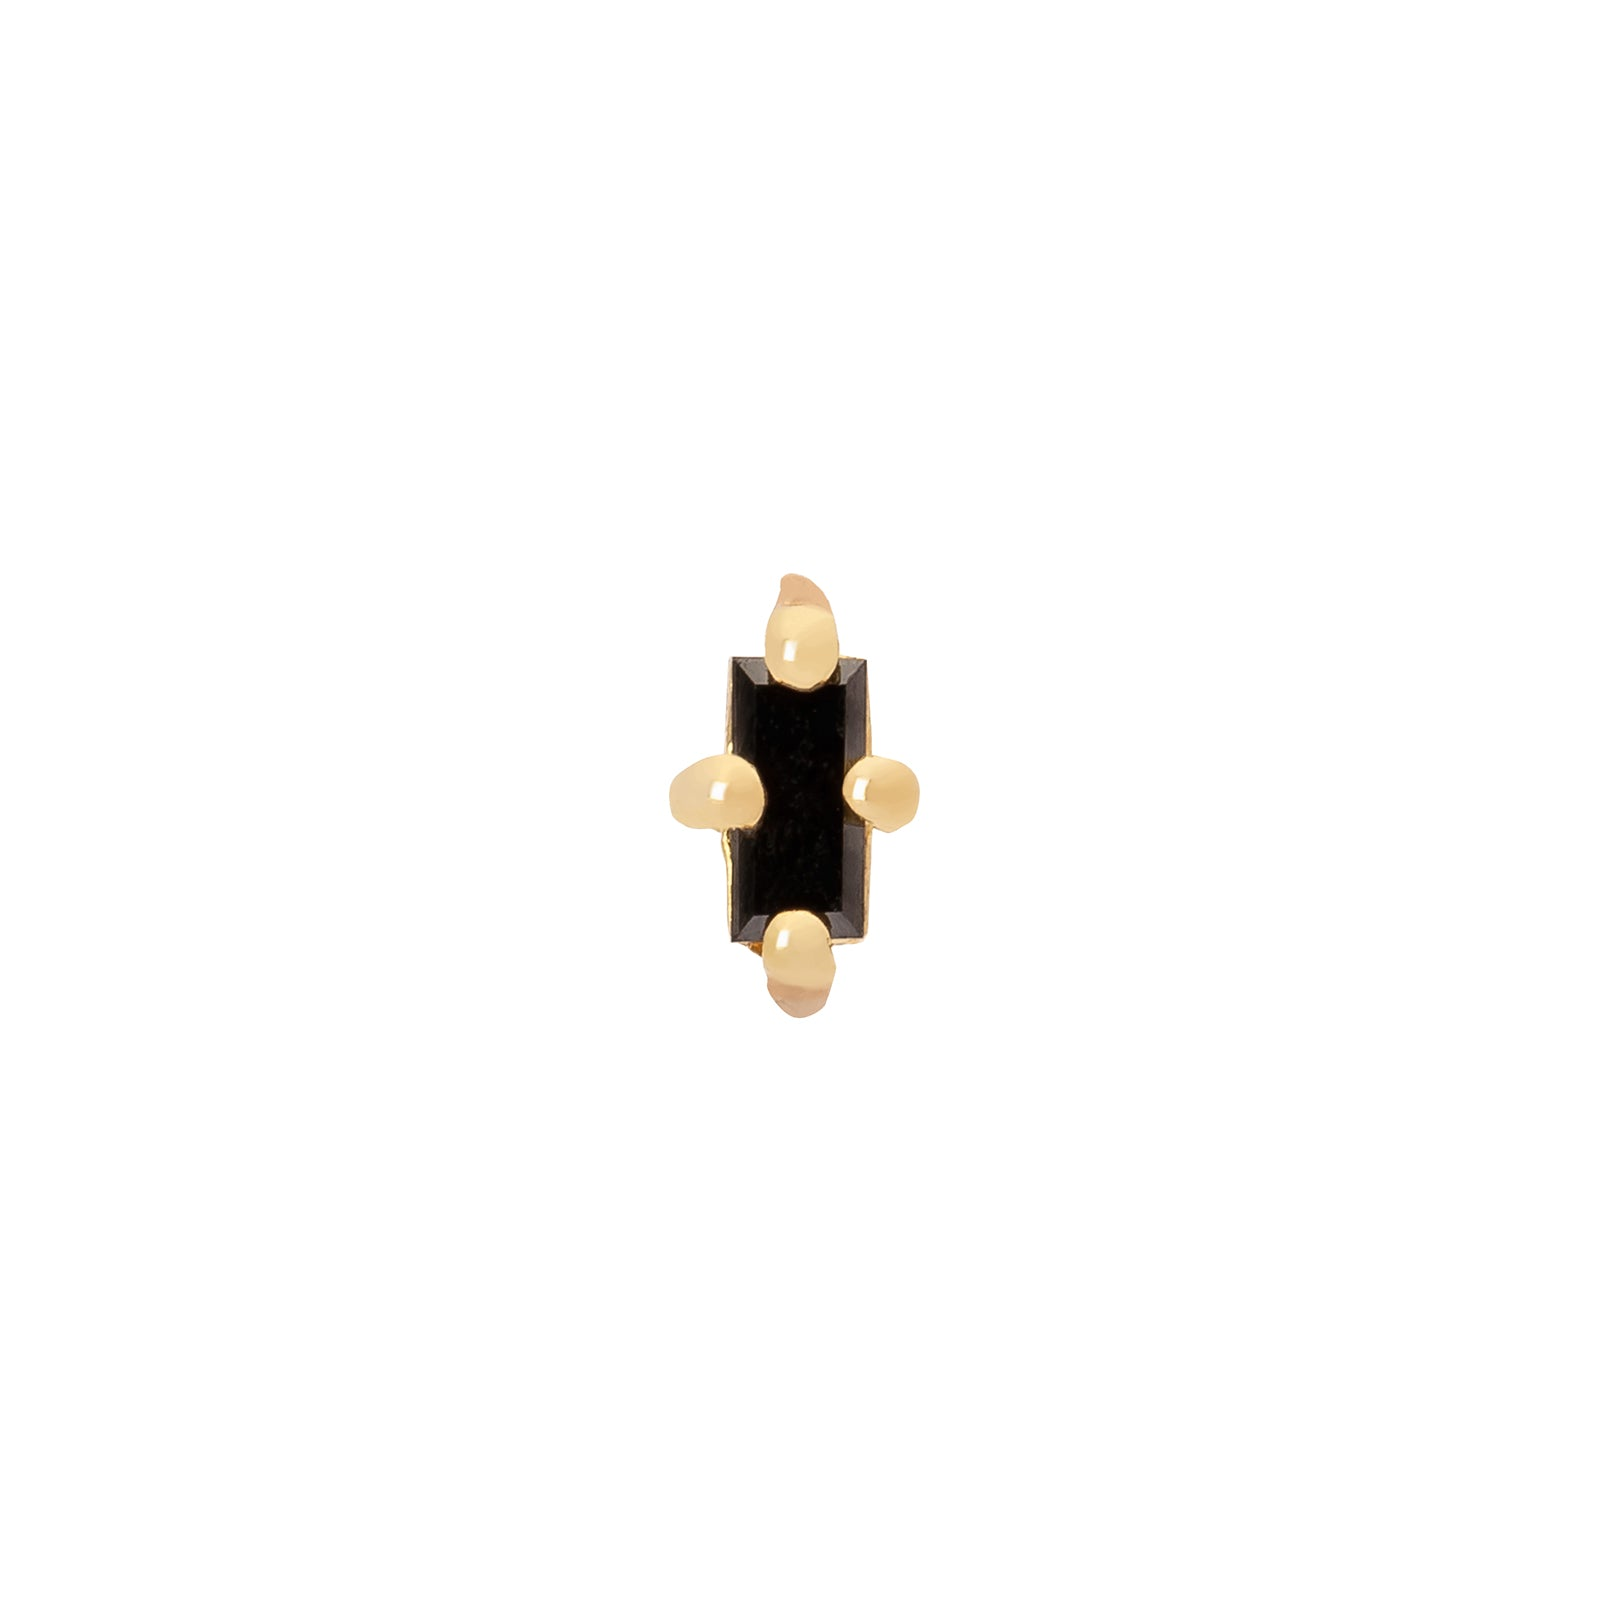 Baguette Stud - Black Diamond & Yellow Gold